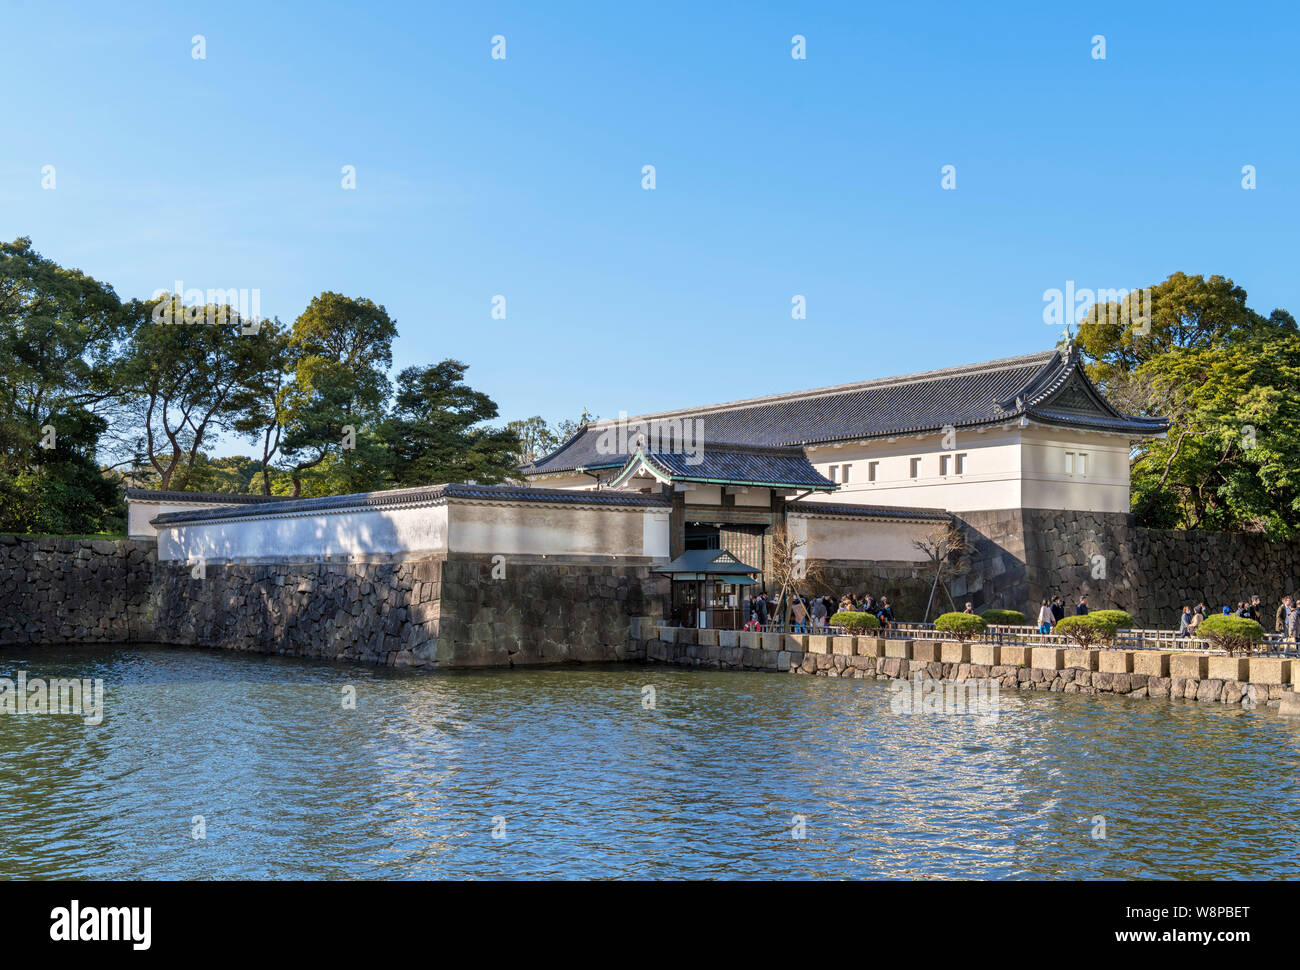 The Ōte-mon Gate, an entrance to the East Gardens of the Imperial Palace, Tokyo, Japan Stock Photo